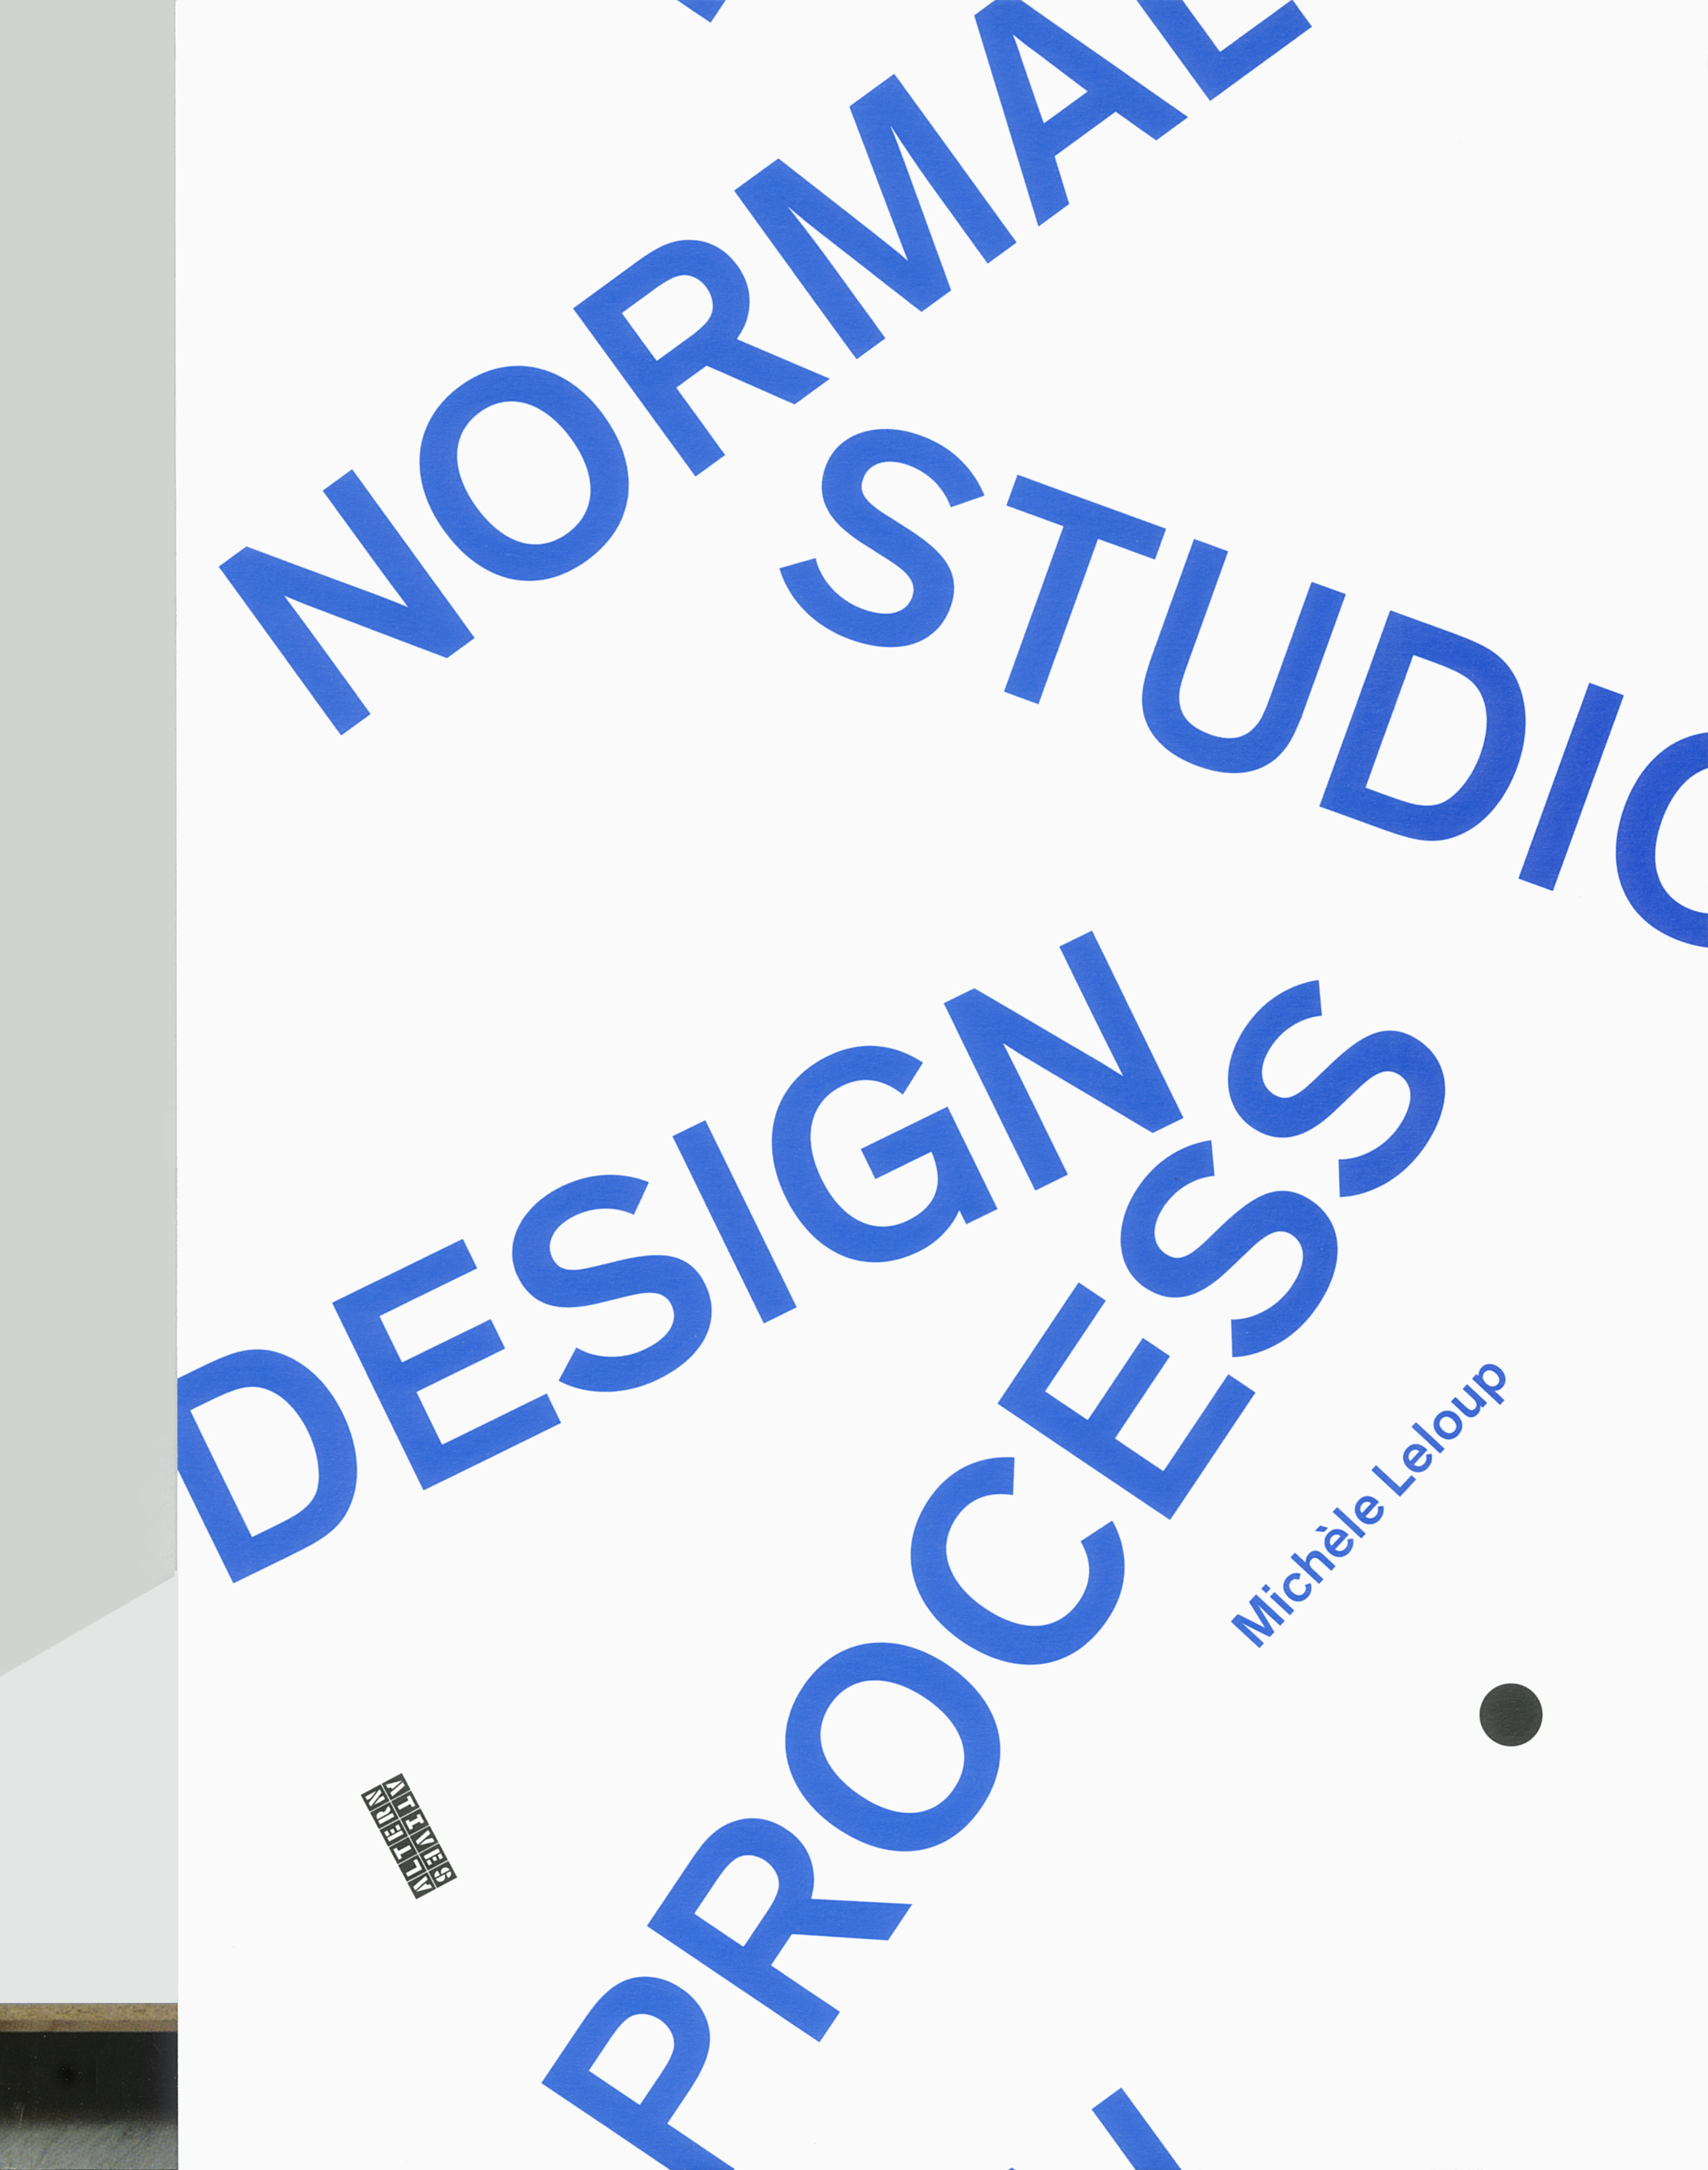 NORMAL STUDIO - DESIGN PROCESS